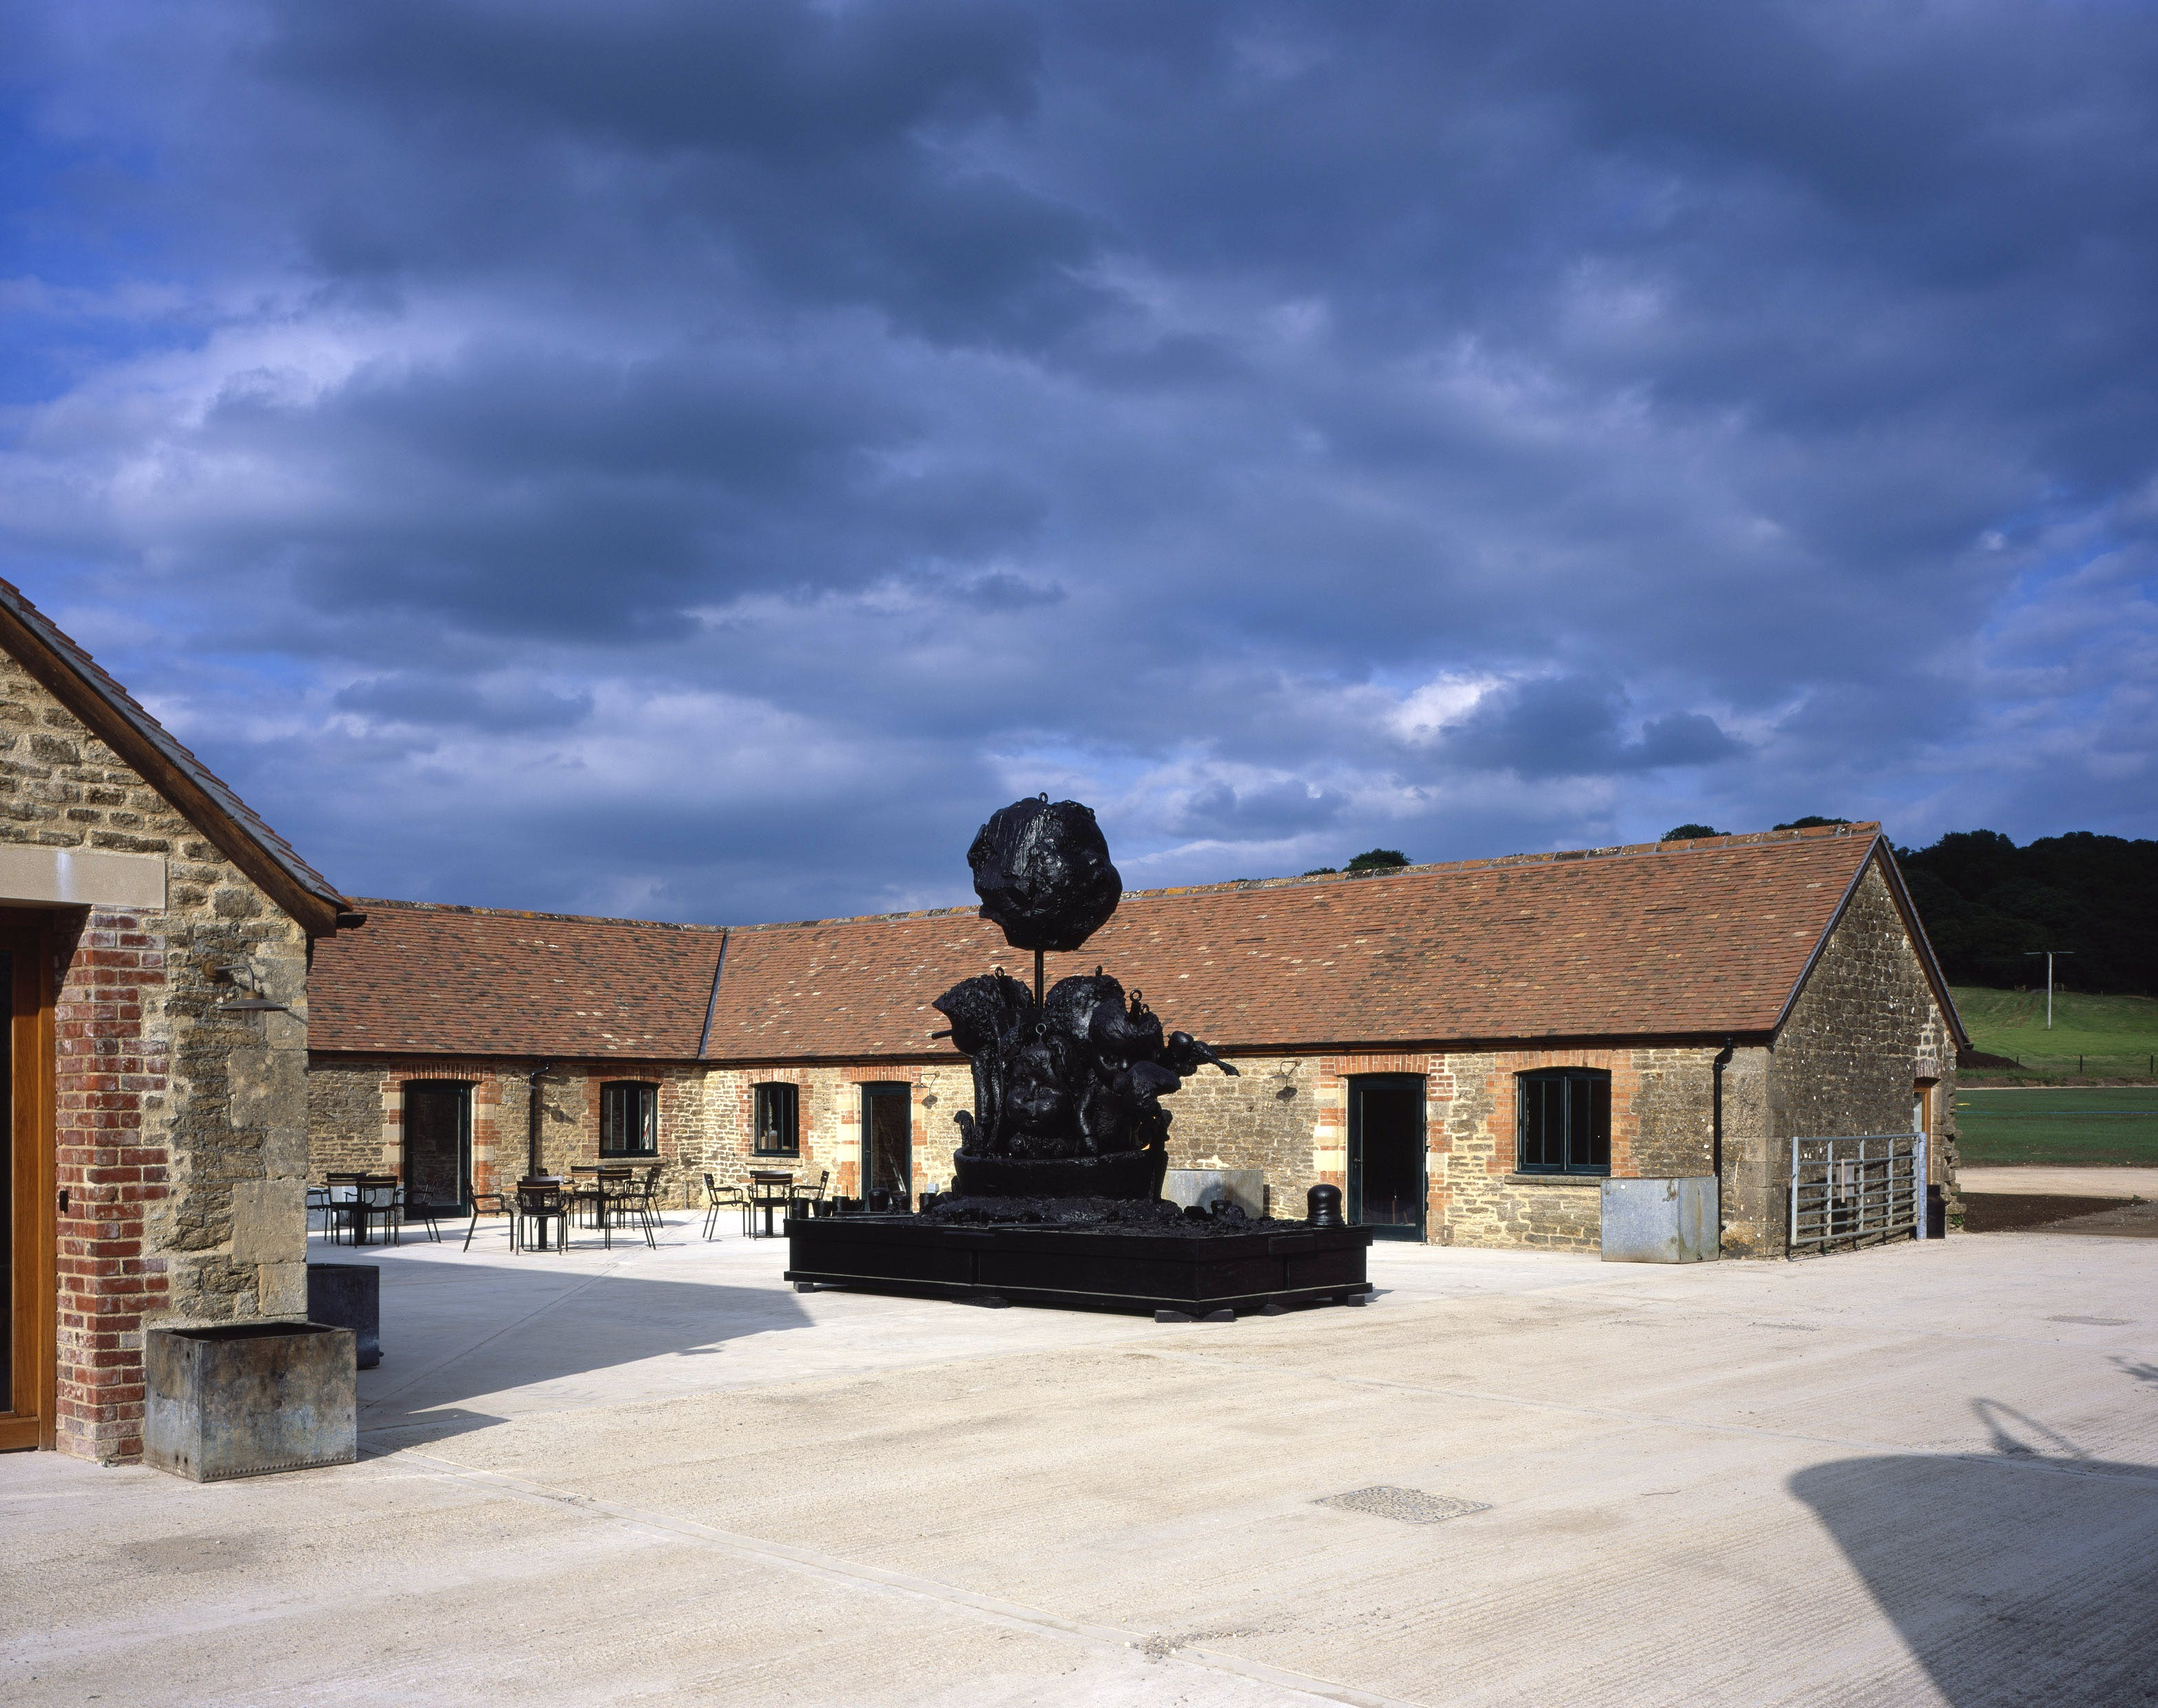 Hauser & Wirth Somerset. Centre: Paul McCarthy, Ship Adrift, Ship of Fools, 2010 – 2011